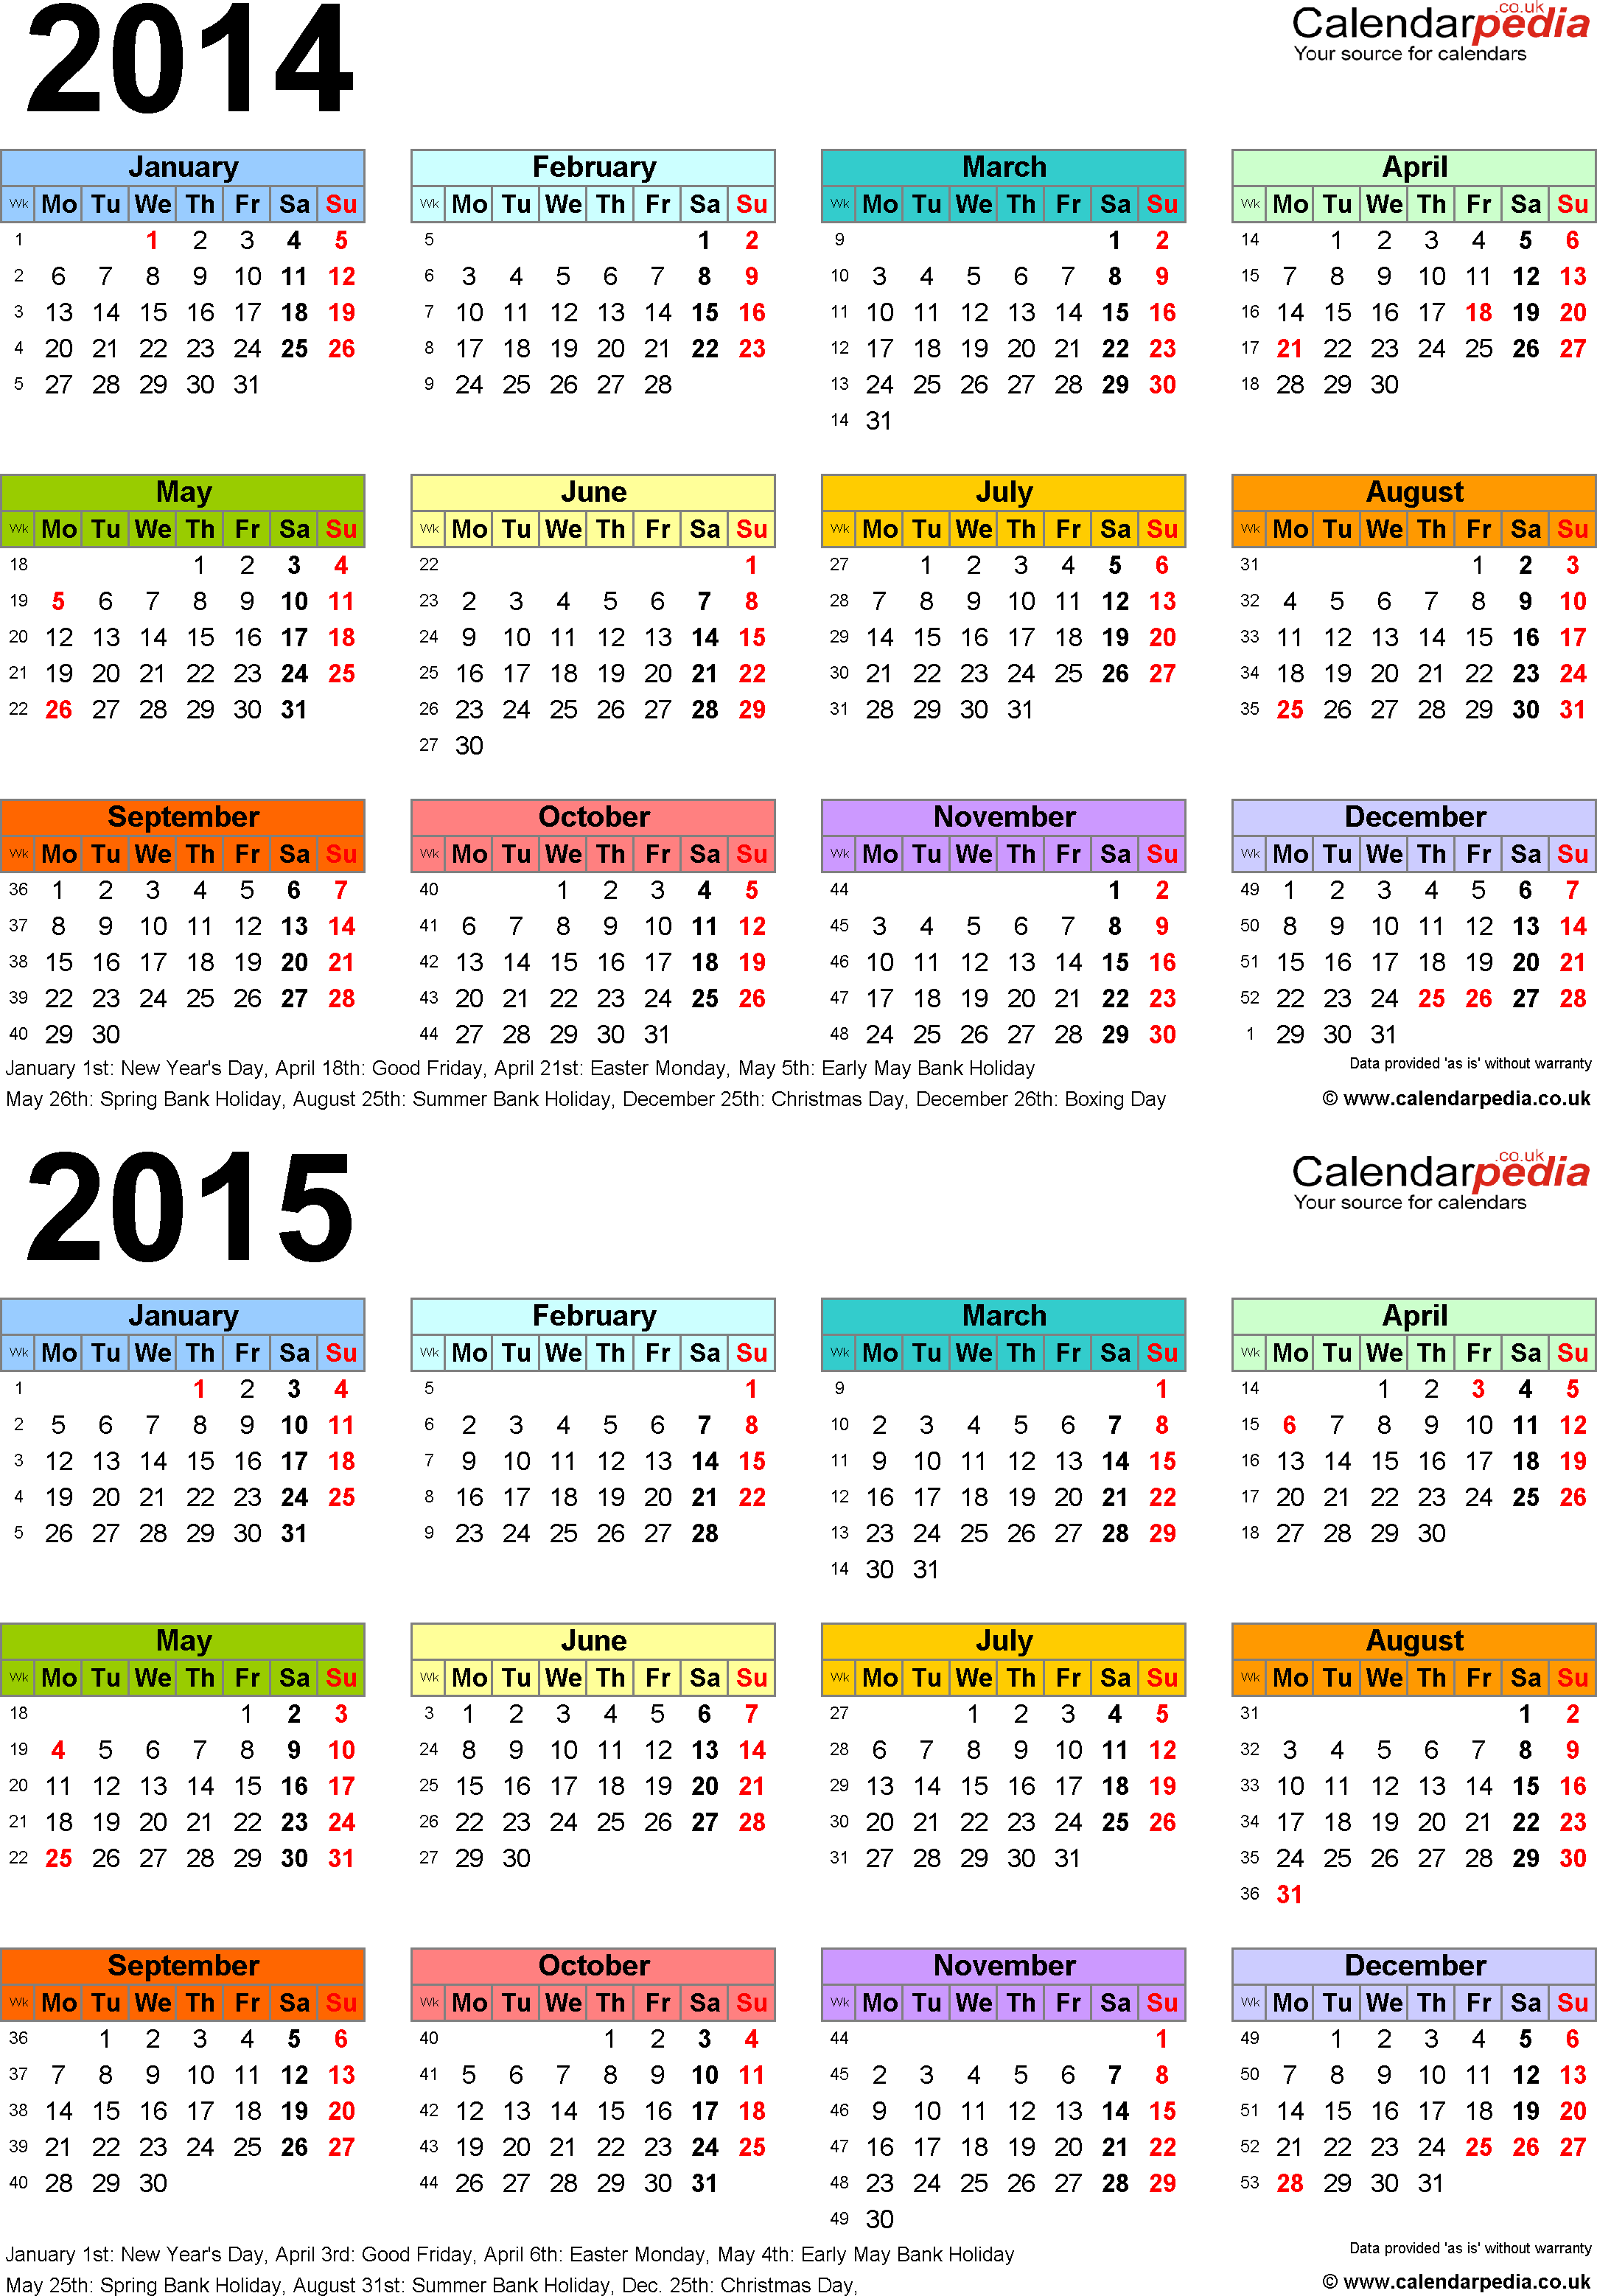 Two year calendars for 2014 & 2015 (UK) for Word